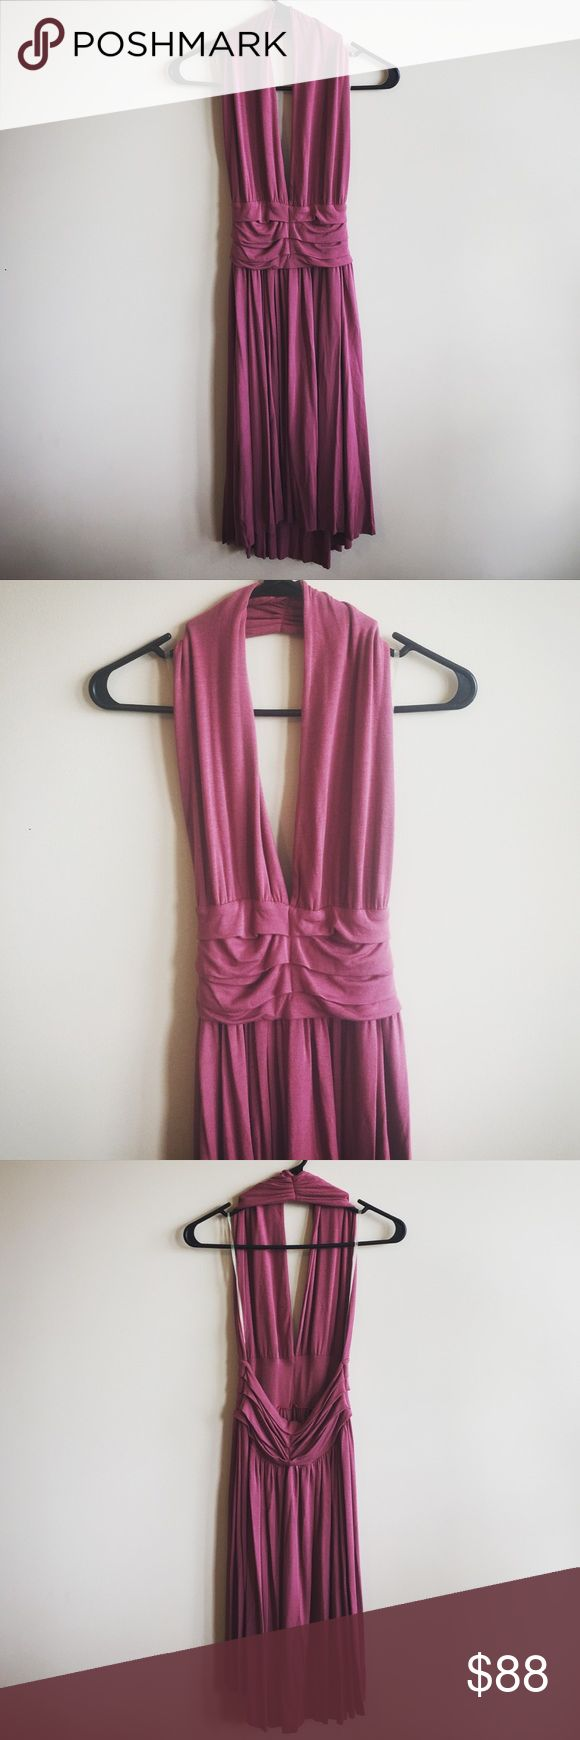 """Rachel Pally Rose Halter Dress Worn once; like new. Beautiful rose colored backless halter dress by Rachel Pally. Very soft, stretchy and comfy. Size X-Small. 92% Modal, 8% Spandex. Length from halter to bottom: approx 40"""" in front, 42"""" in back. Rachel Pally Dresses Backless"""